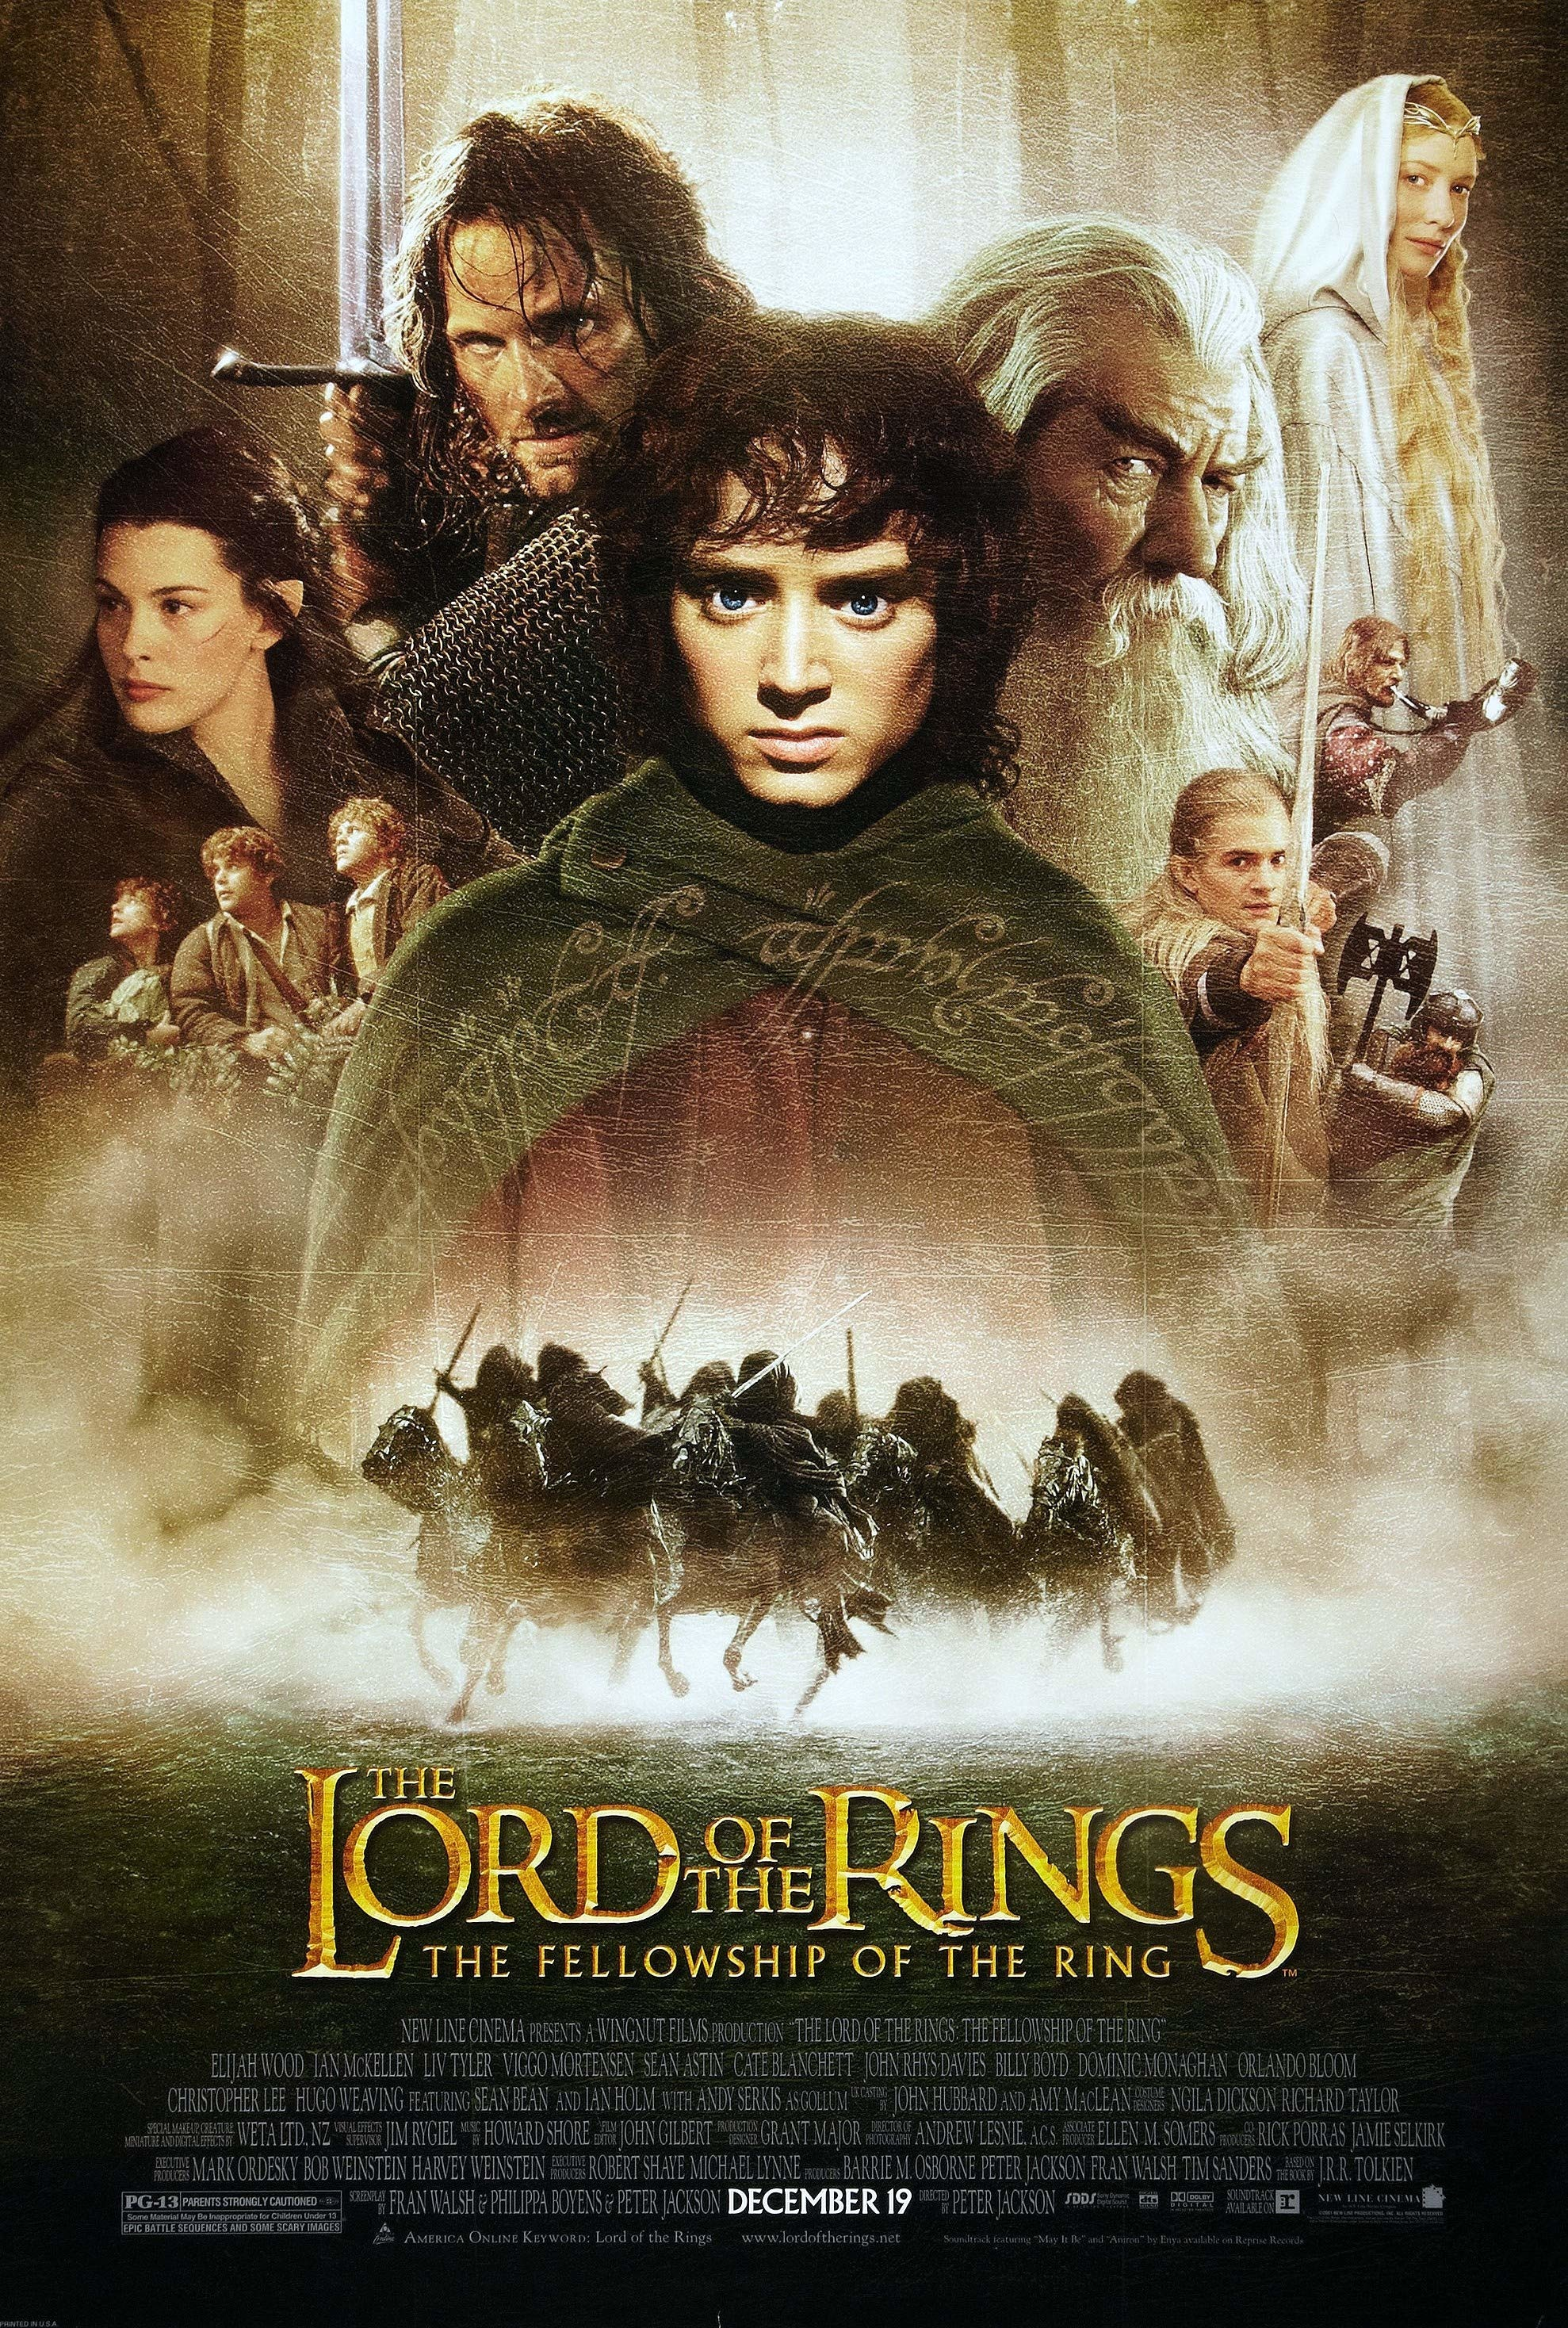 The lord of the rings extended trilogy english subtitles